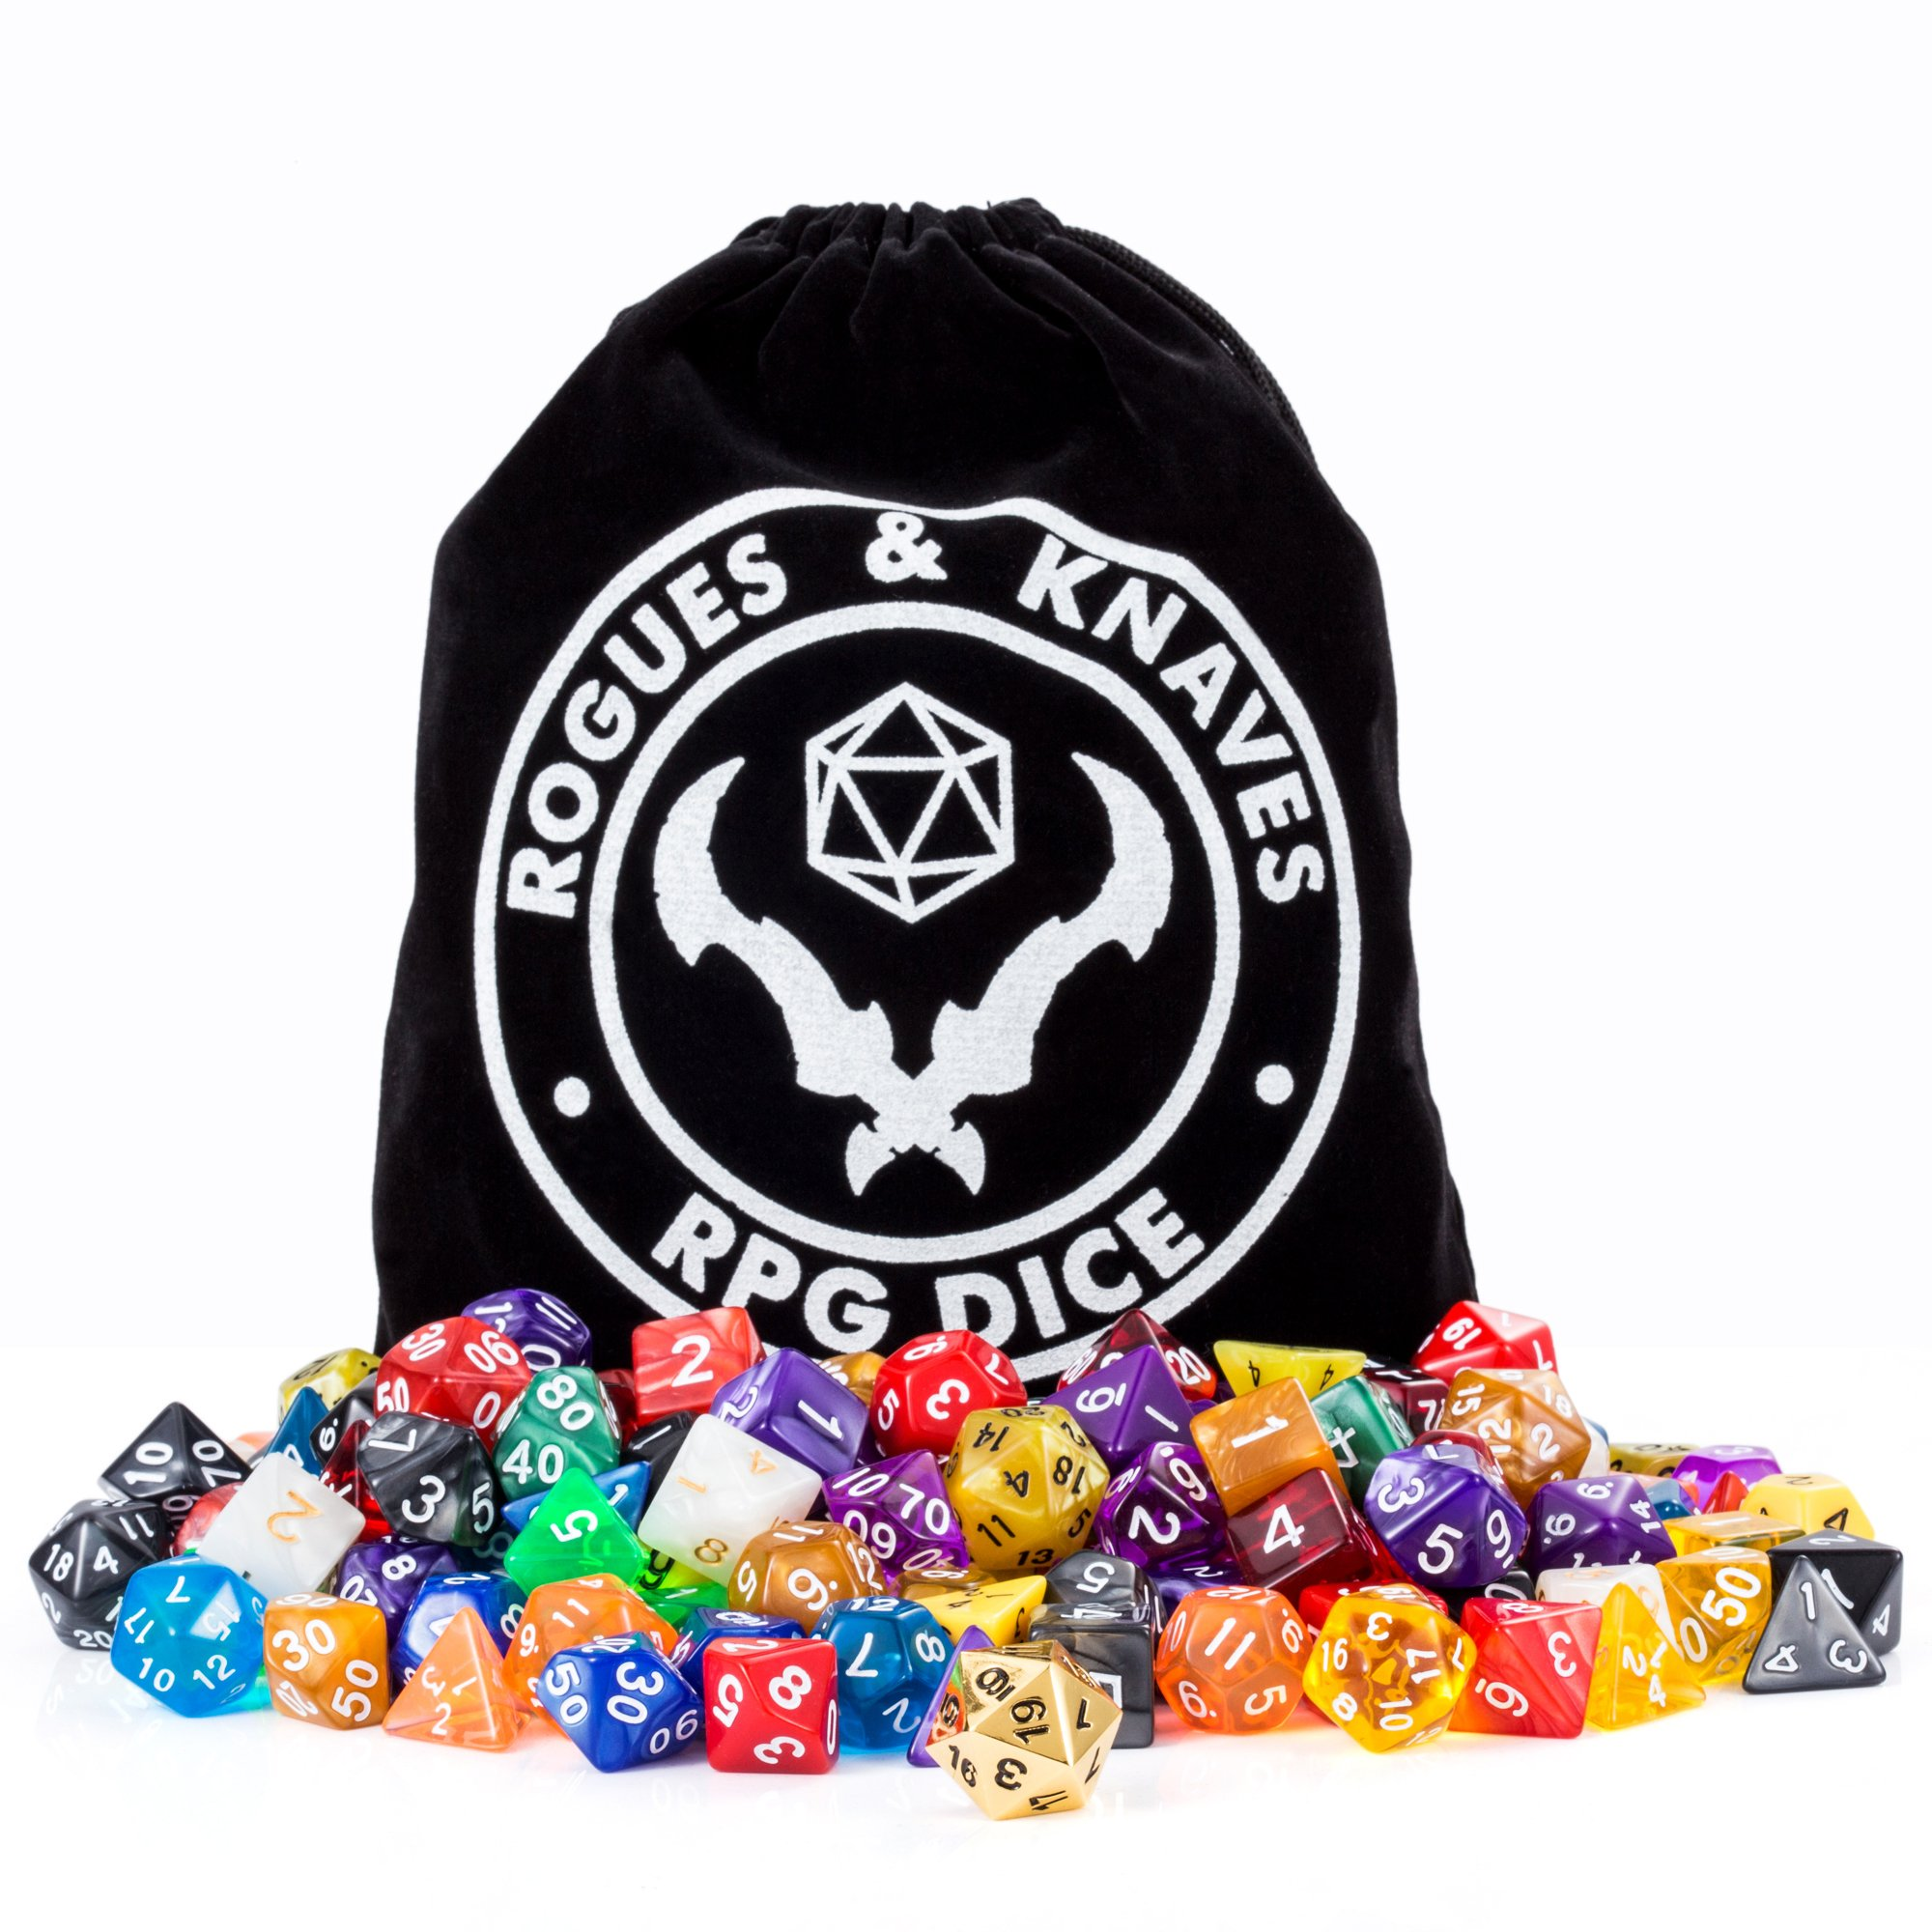 Rogues & Knaves 18 Dice Sets D&D (126 Polyhedral Dice!); Bonus Metal D20, Large Velvet Dice Bag; Sets of Dice for Dungeons & Dragons, RPG Games, Pathfinder, MTG, Math Games.